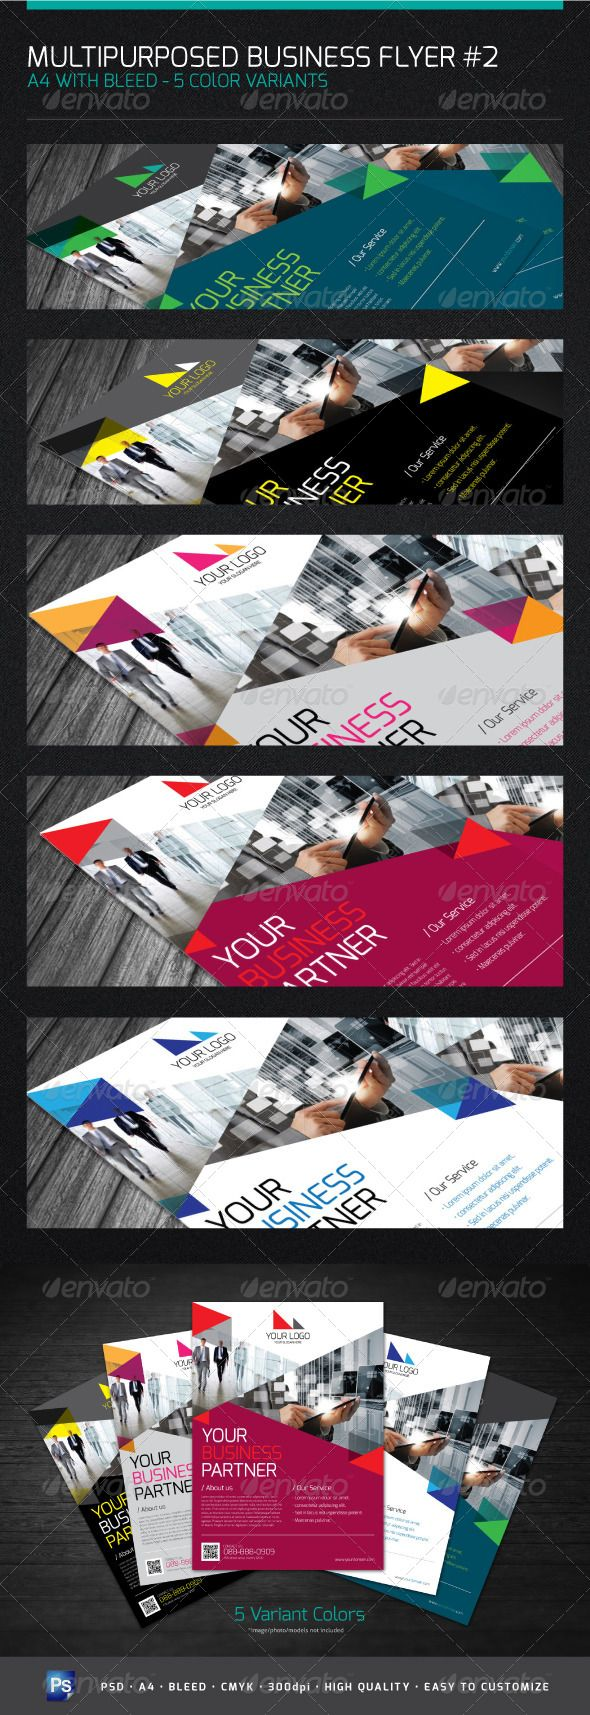 FLYER A4 - FOR MULTIPURPOSE BUSINESS#2 - Corporate Flyers